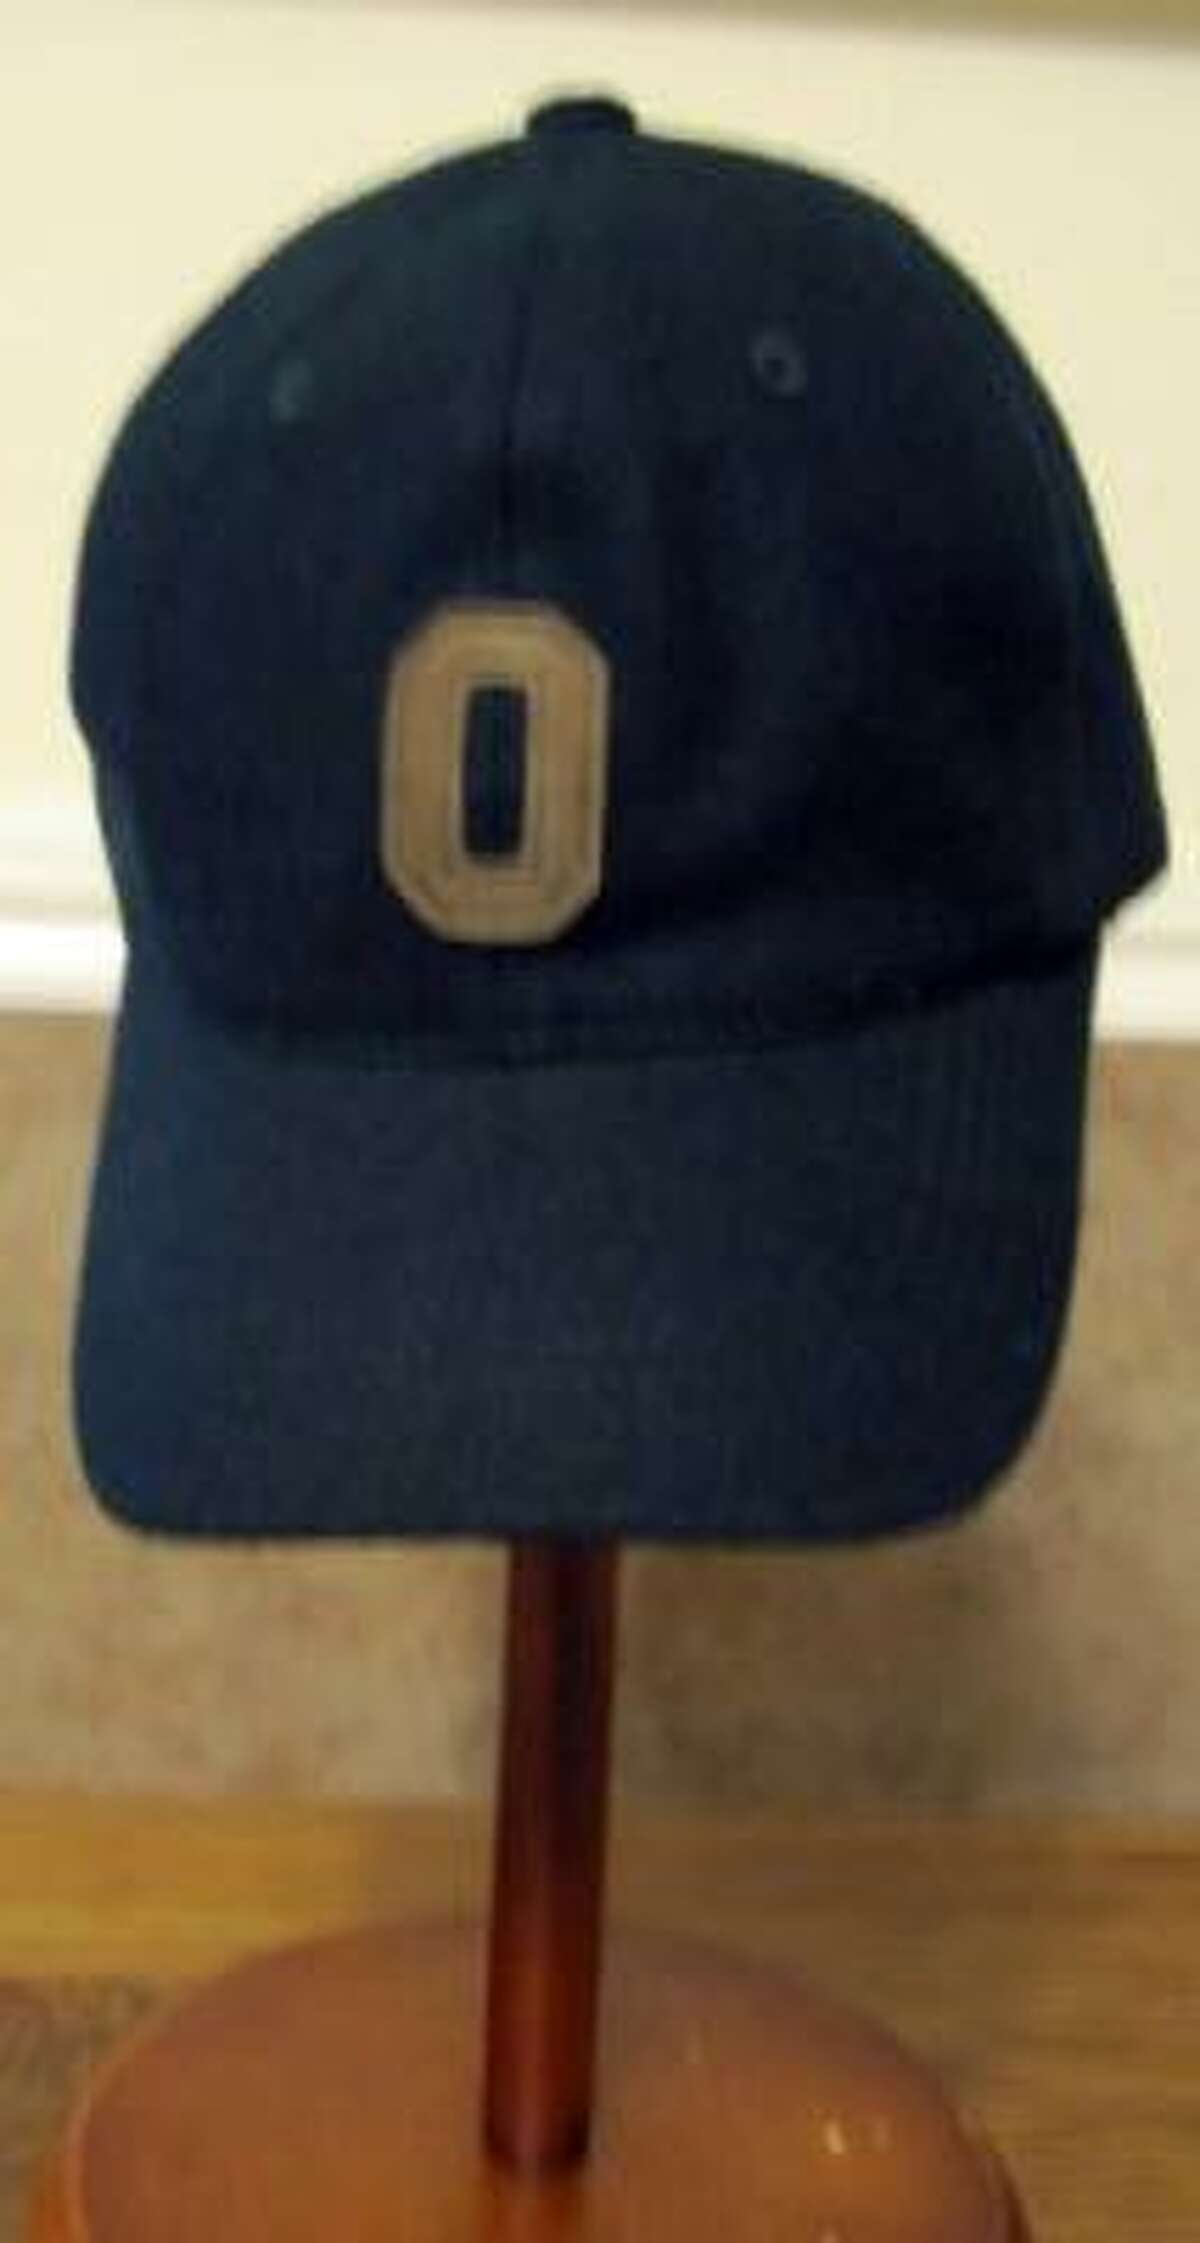 Baseball cap. A celebrated favorite in the US, especially when myriad caps are worn in support of sports teams.